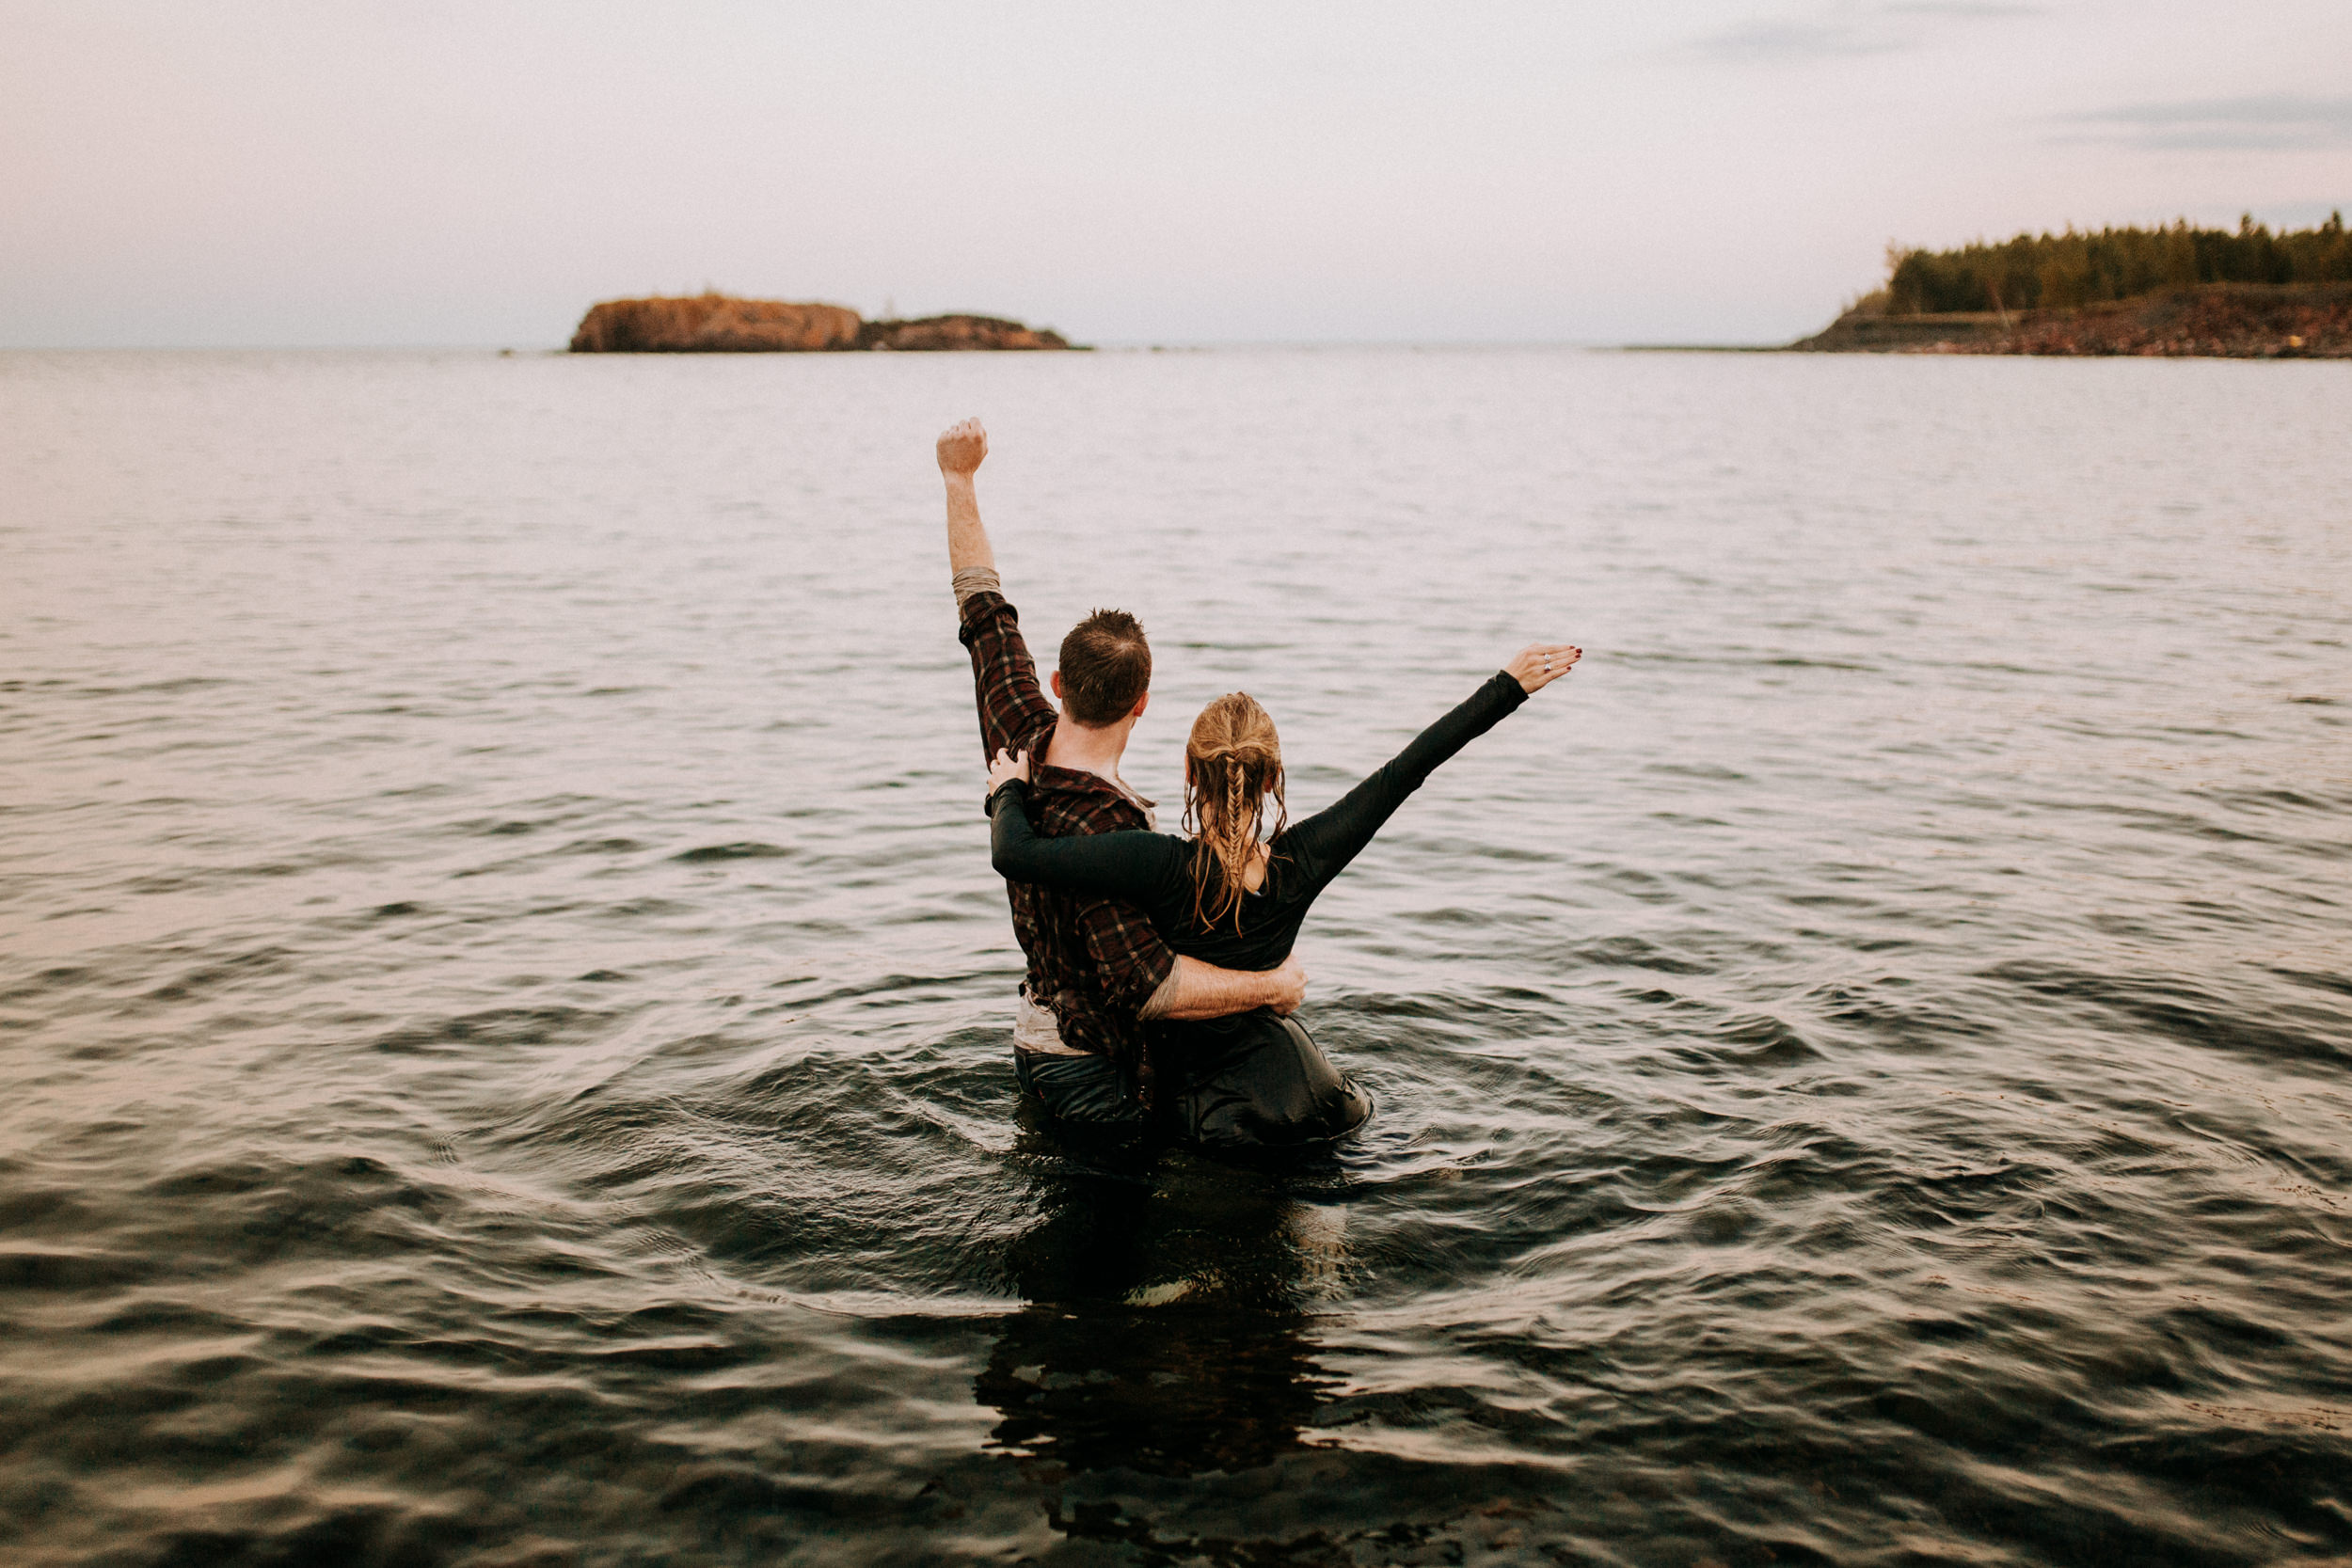 Engagement photo ideas for adventurous couples in Minnesota